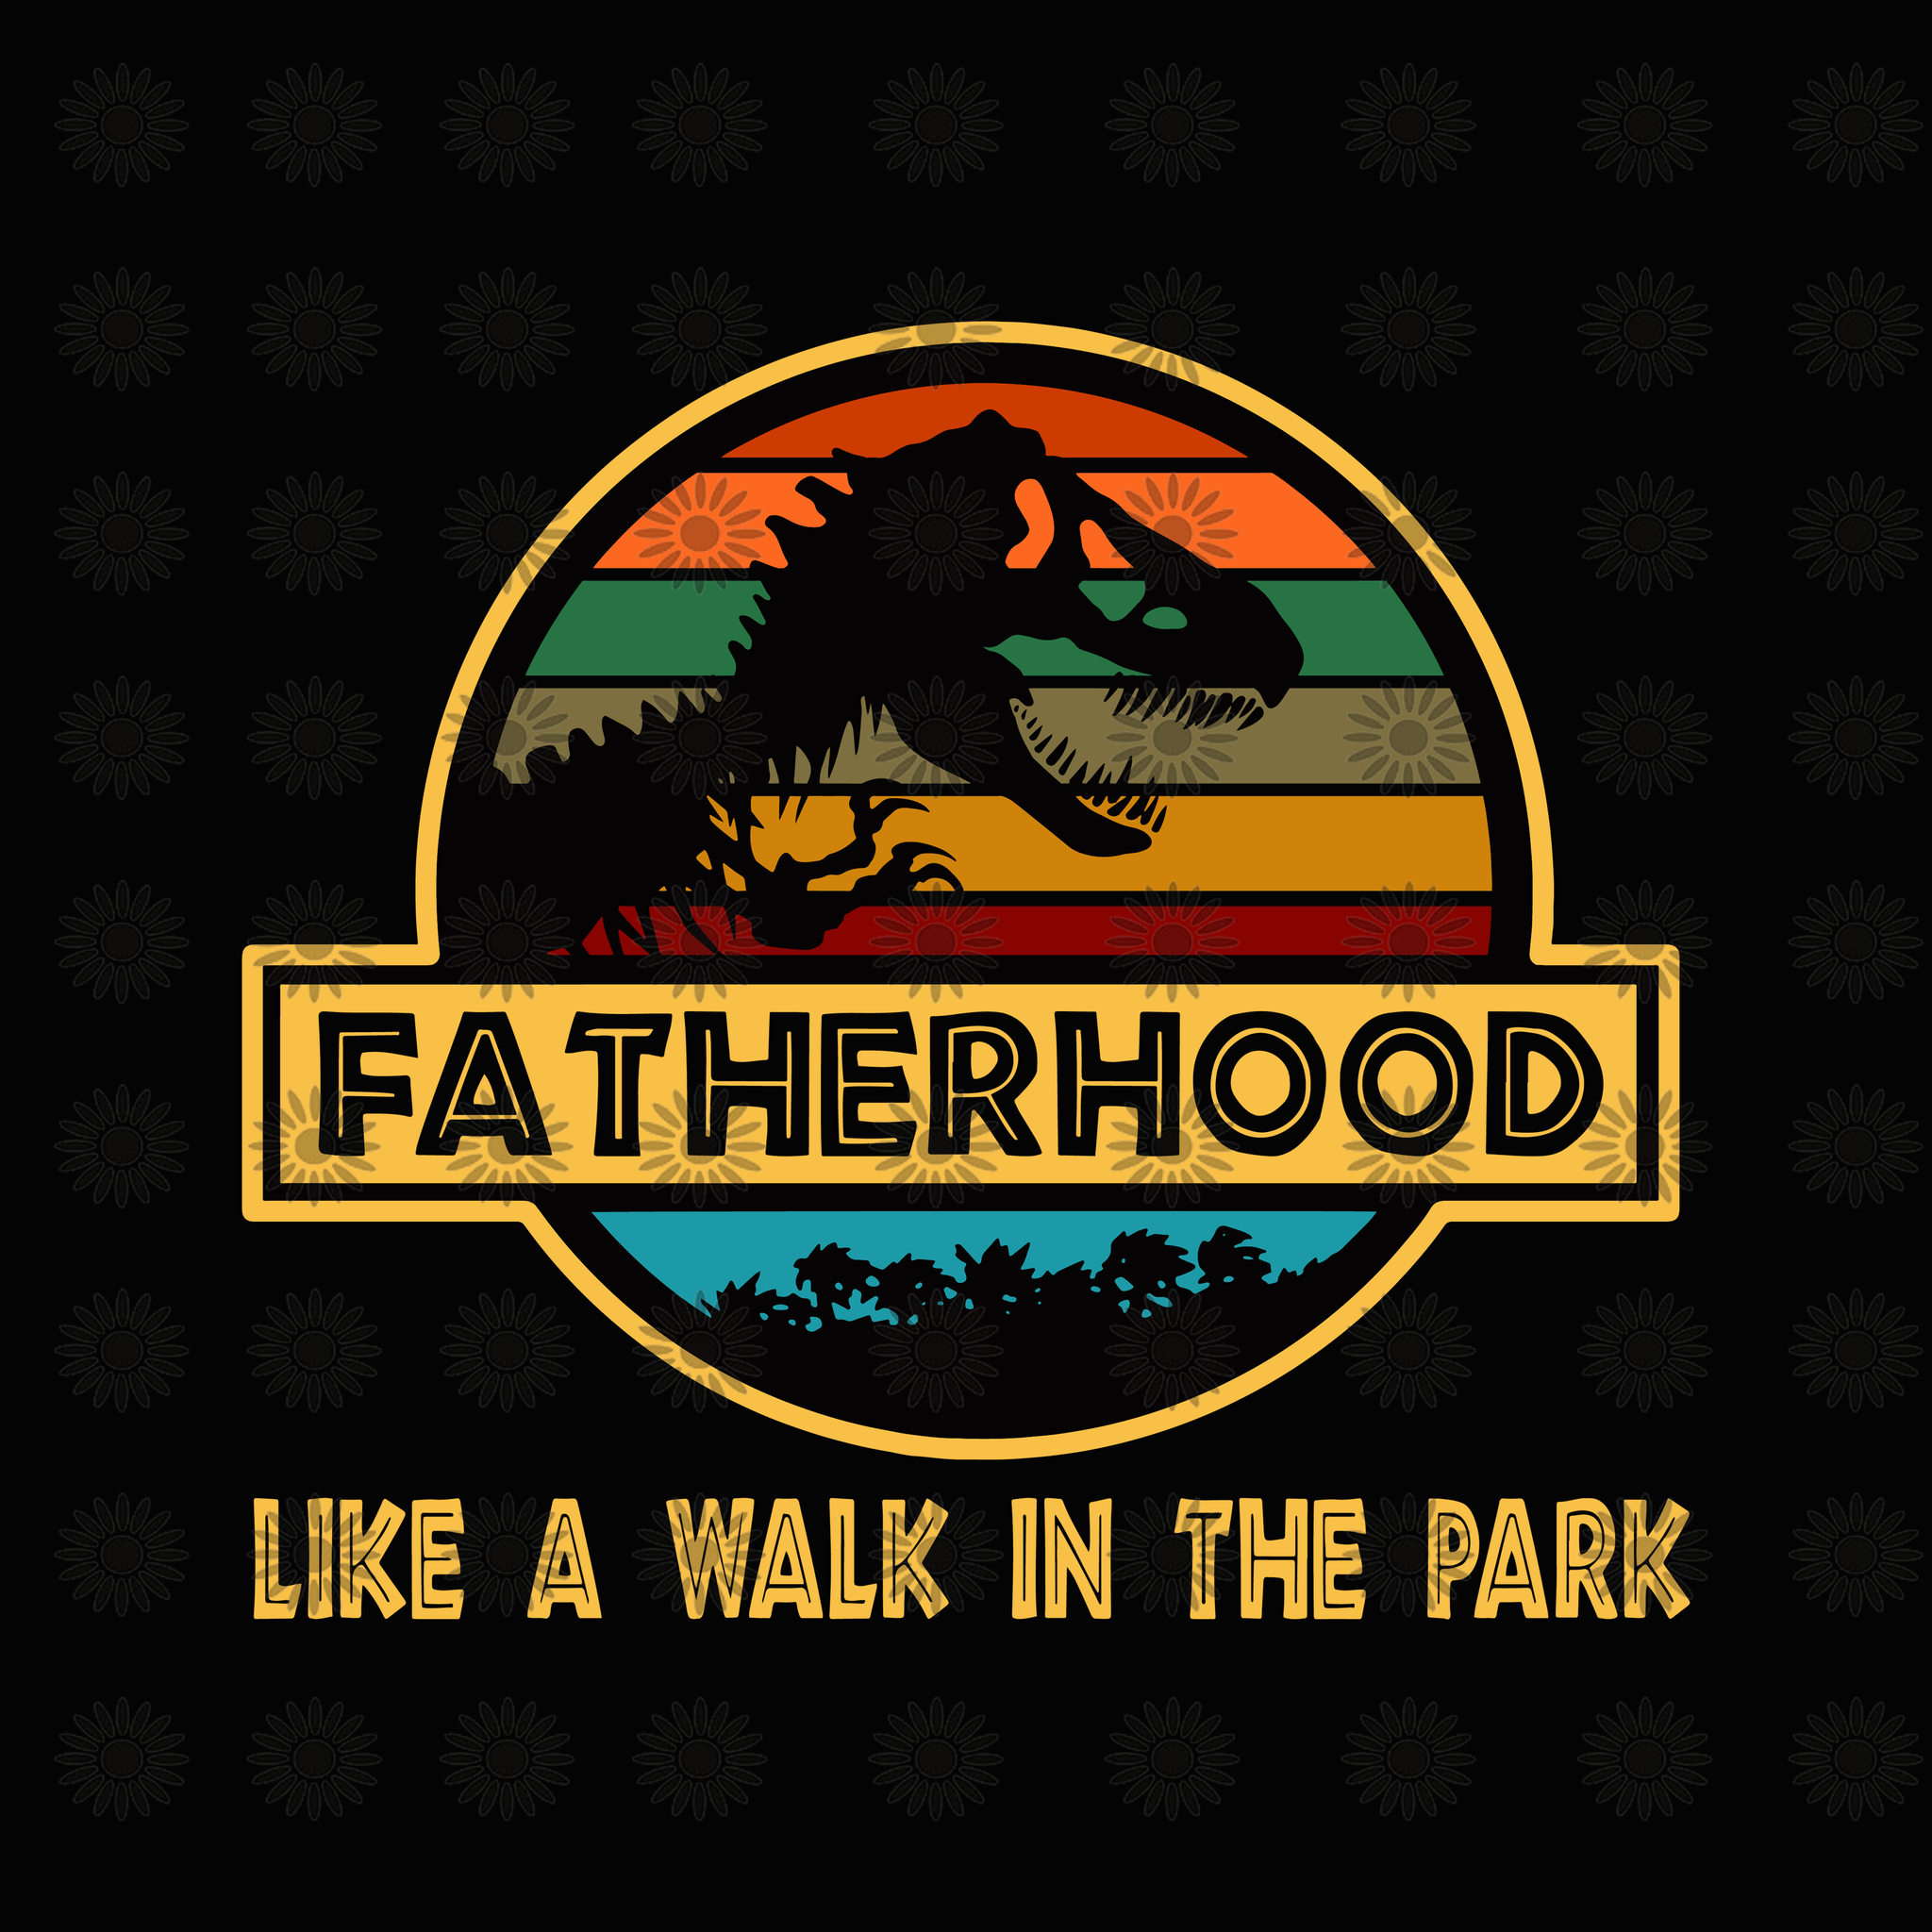 Fatherhood, Like a walk in the park svg, Fatherhood vector, Fatherhood design, svg, png, dxf, eps file